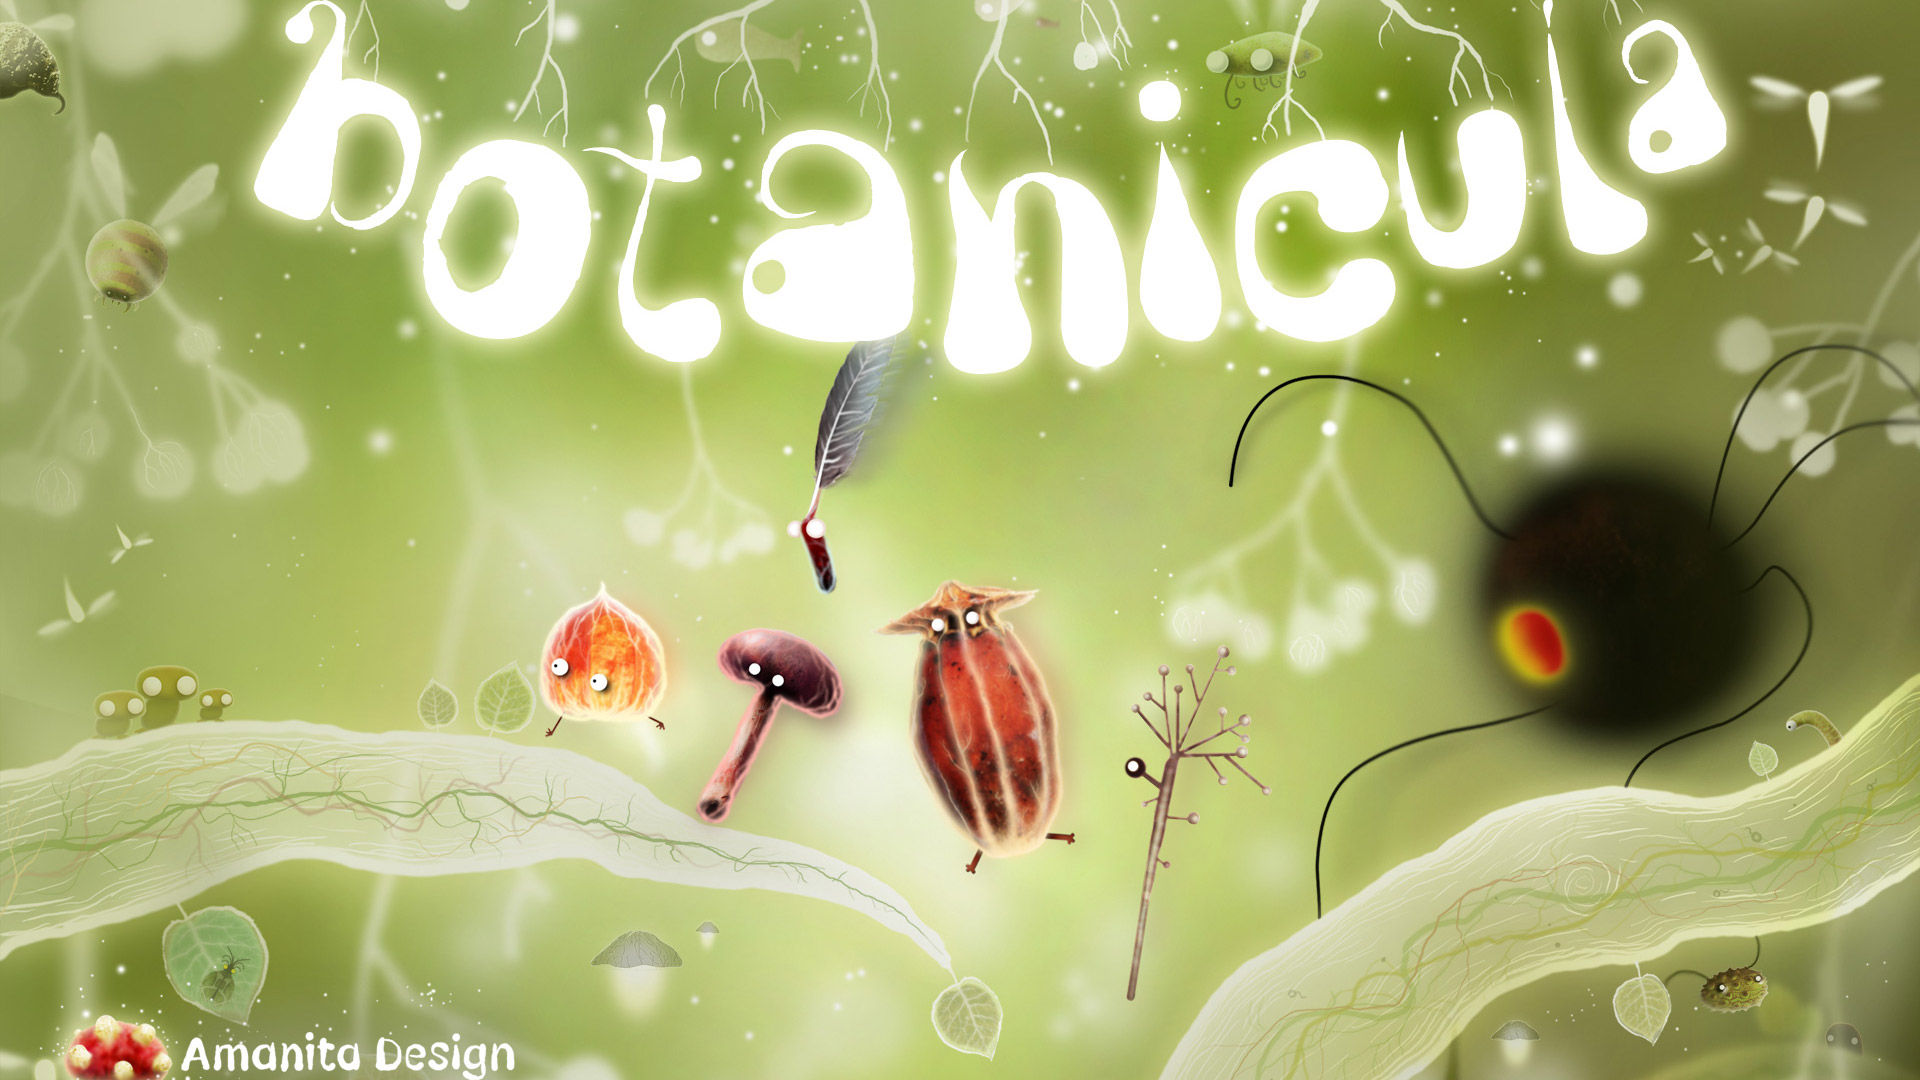 Botanicula wallpaper 4